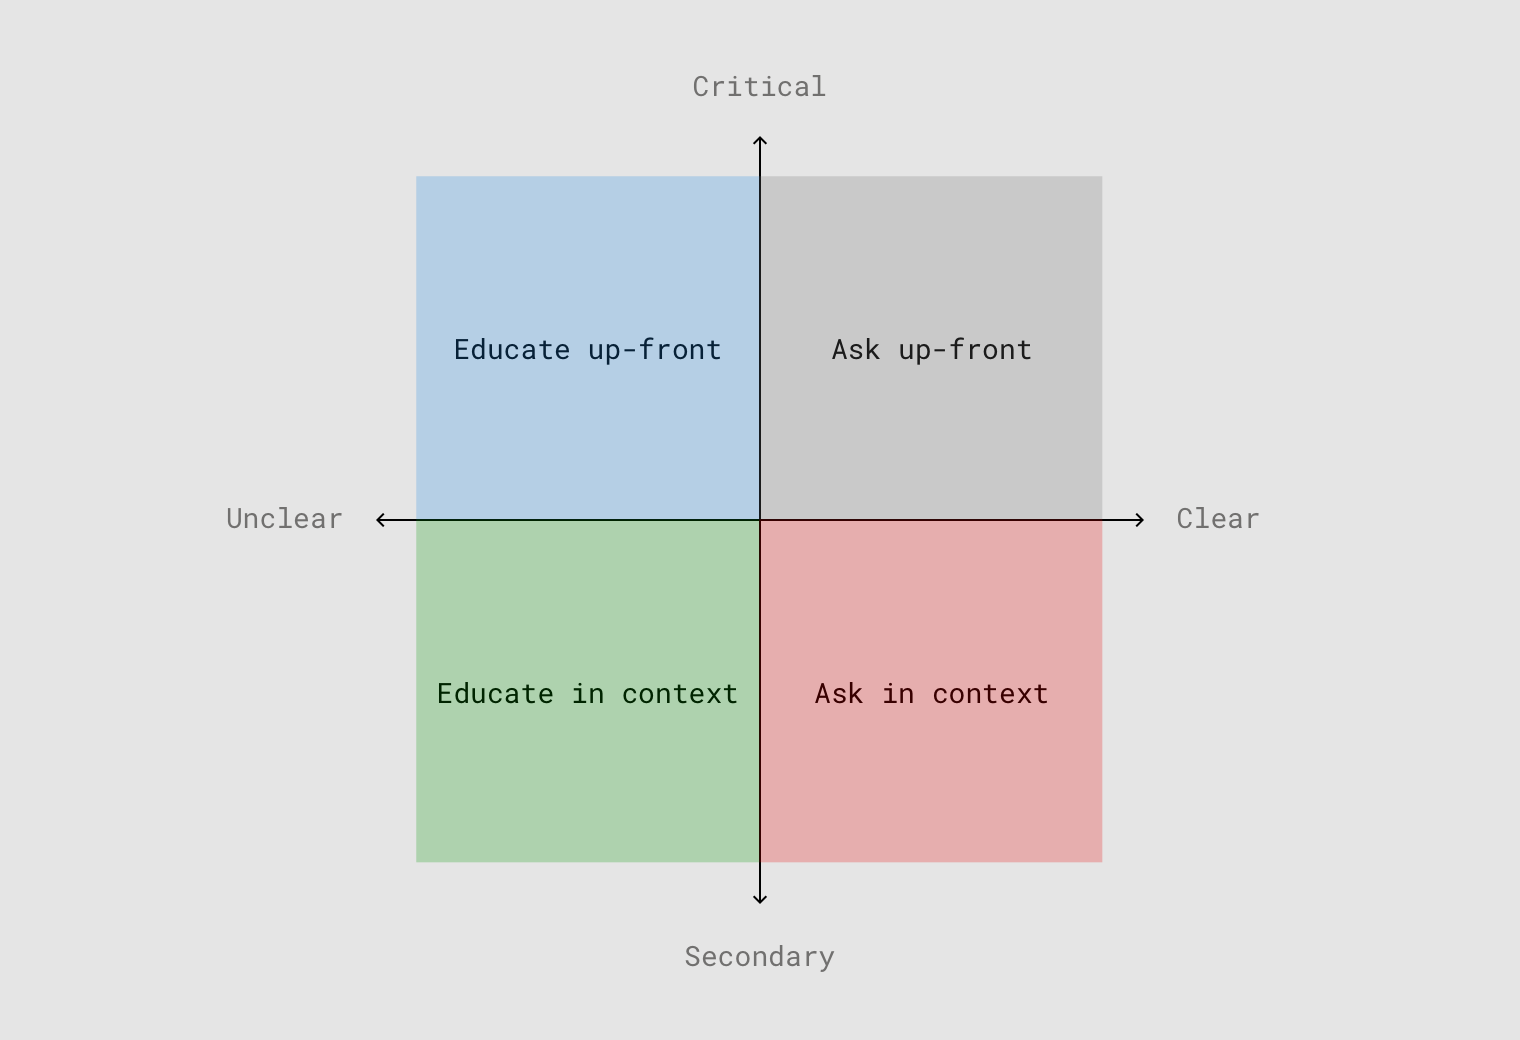 A diagram with two axes: secondary to critical and unclear to clear. Ask up-front sits in the critical-clear quadrant. Ask in context sits in the secondary-clear quadrant. Educate up-front sits in the critical-unclear quadrant. And educate in context sits in the unclear-secondary quandrant.